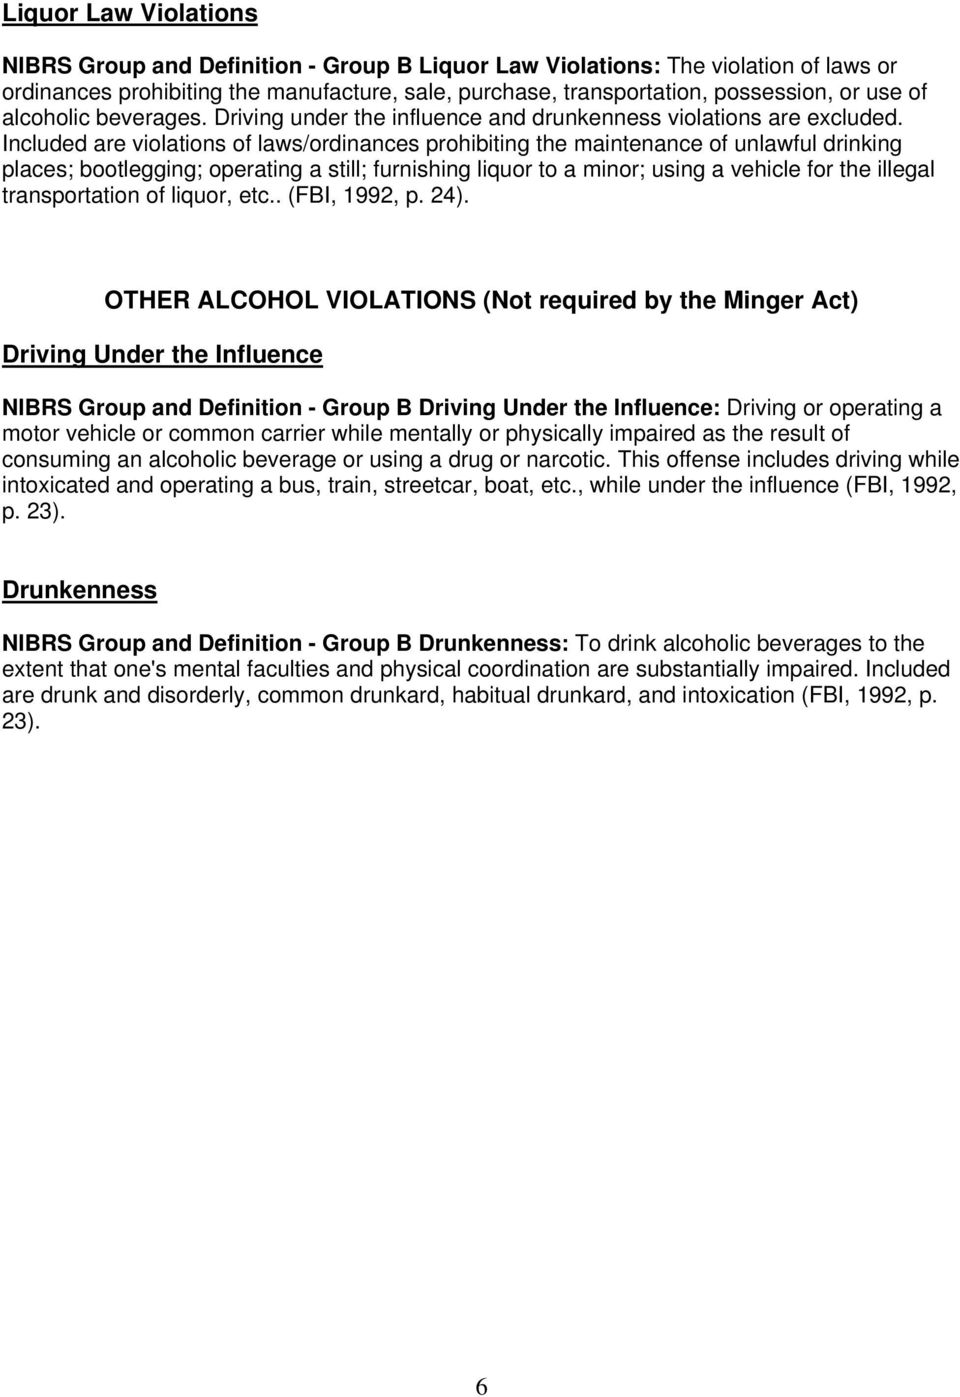 Included are violations of laws/ordinances prohibiting the maintenance of unlawful drinking places; bootlegging; operating a still; furnishing liquor to a minor; using a vehicle for the illegal